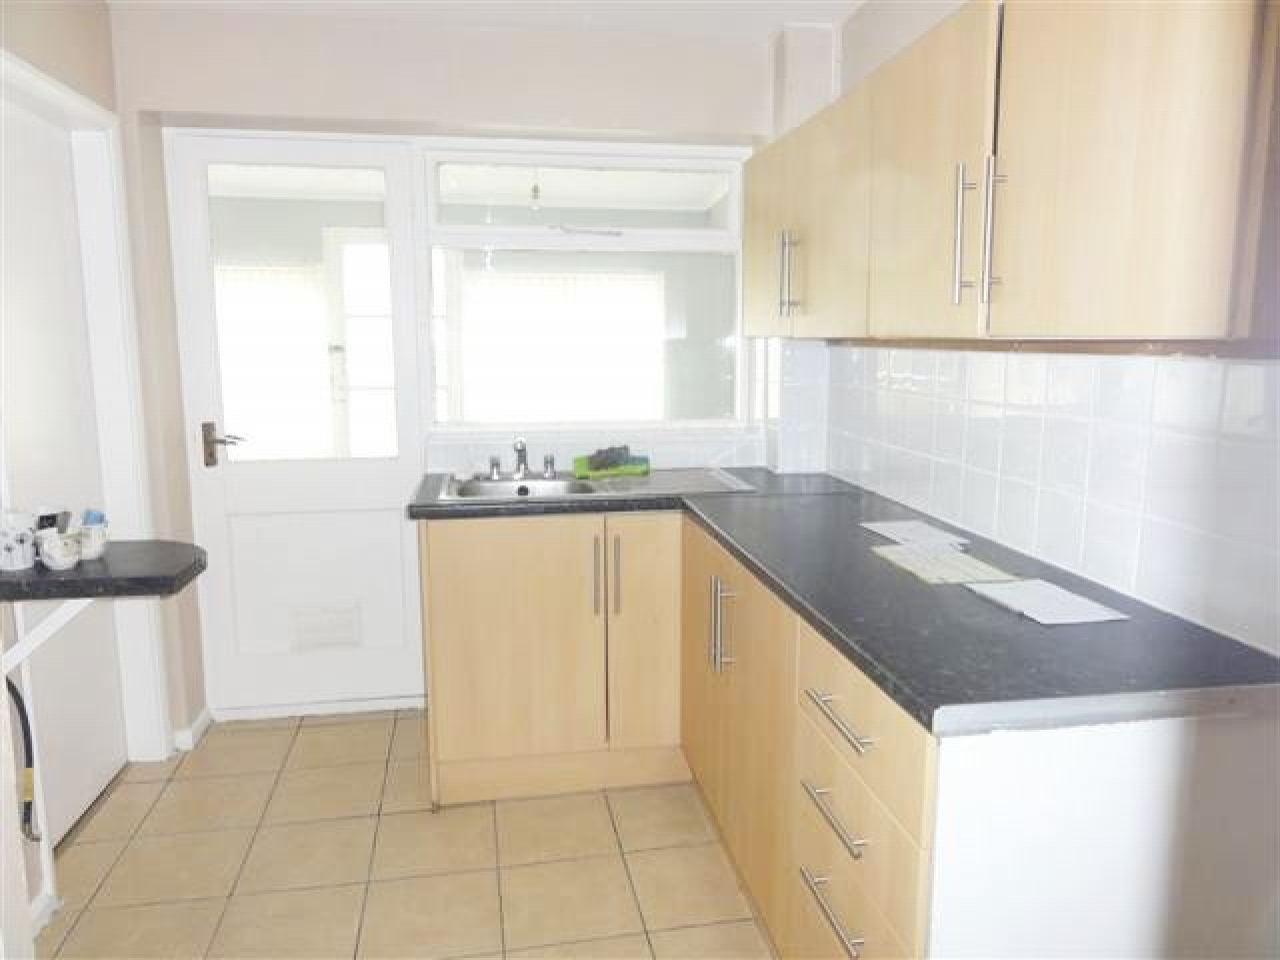 Image 1 of 1 of Kitchen, on Accommodation Comprising for